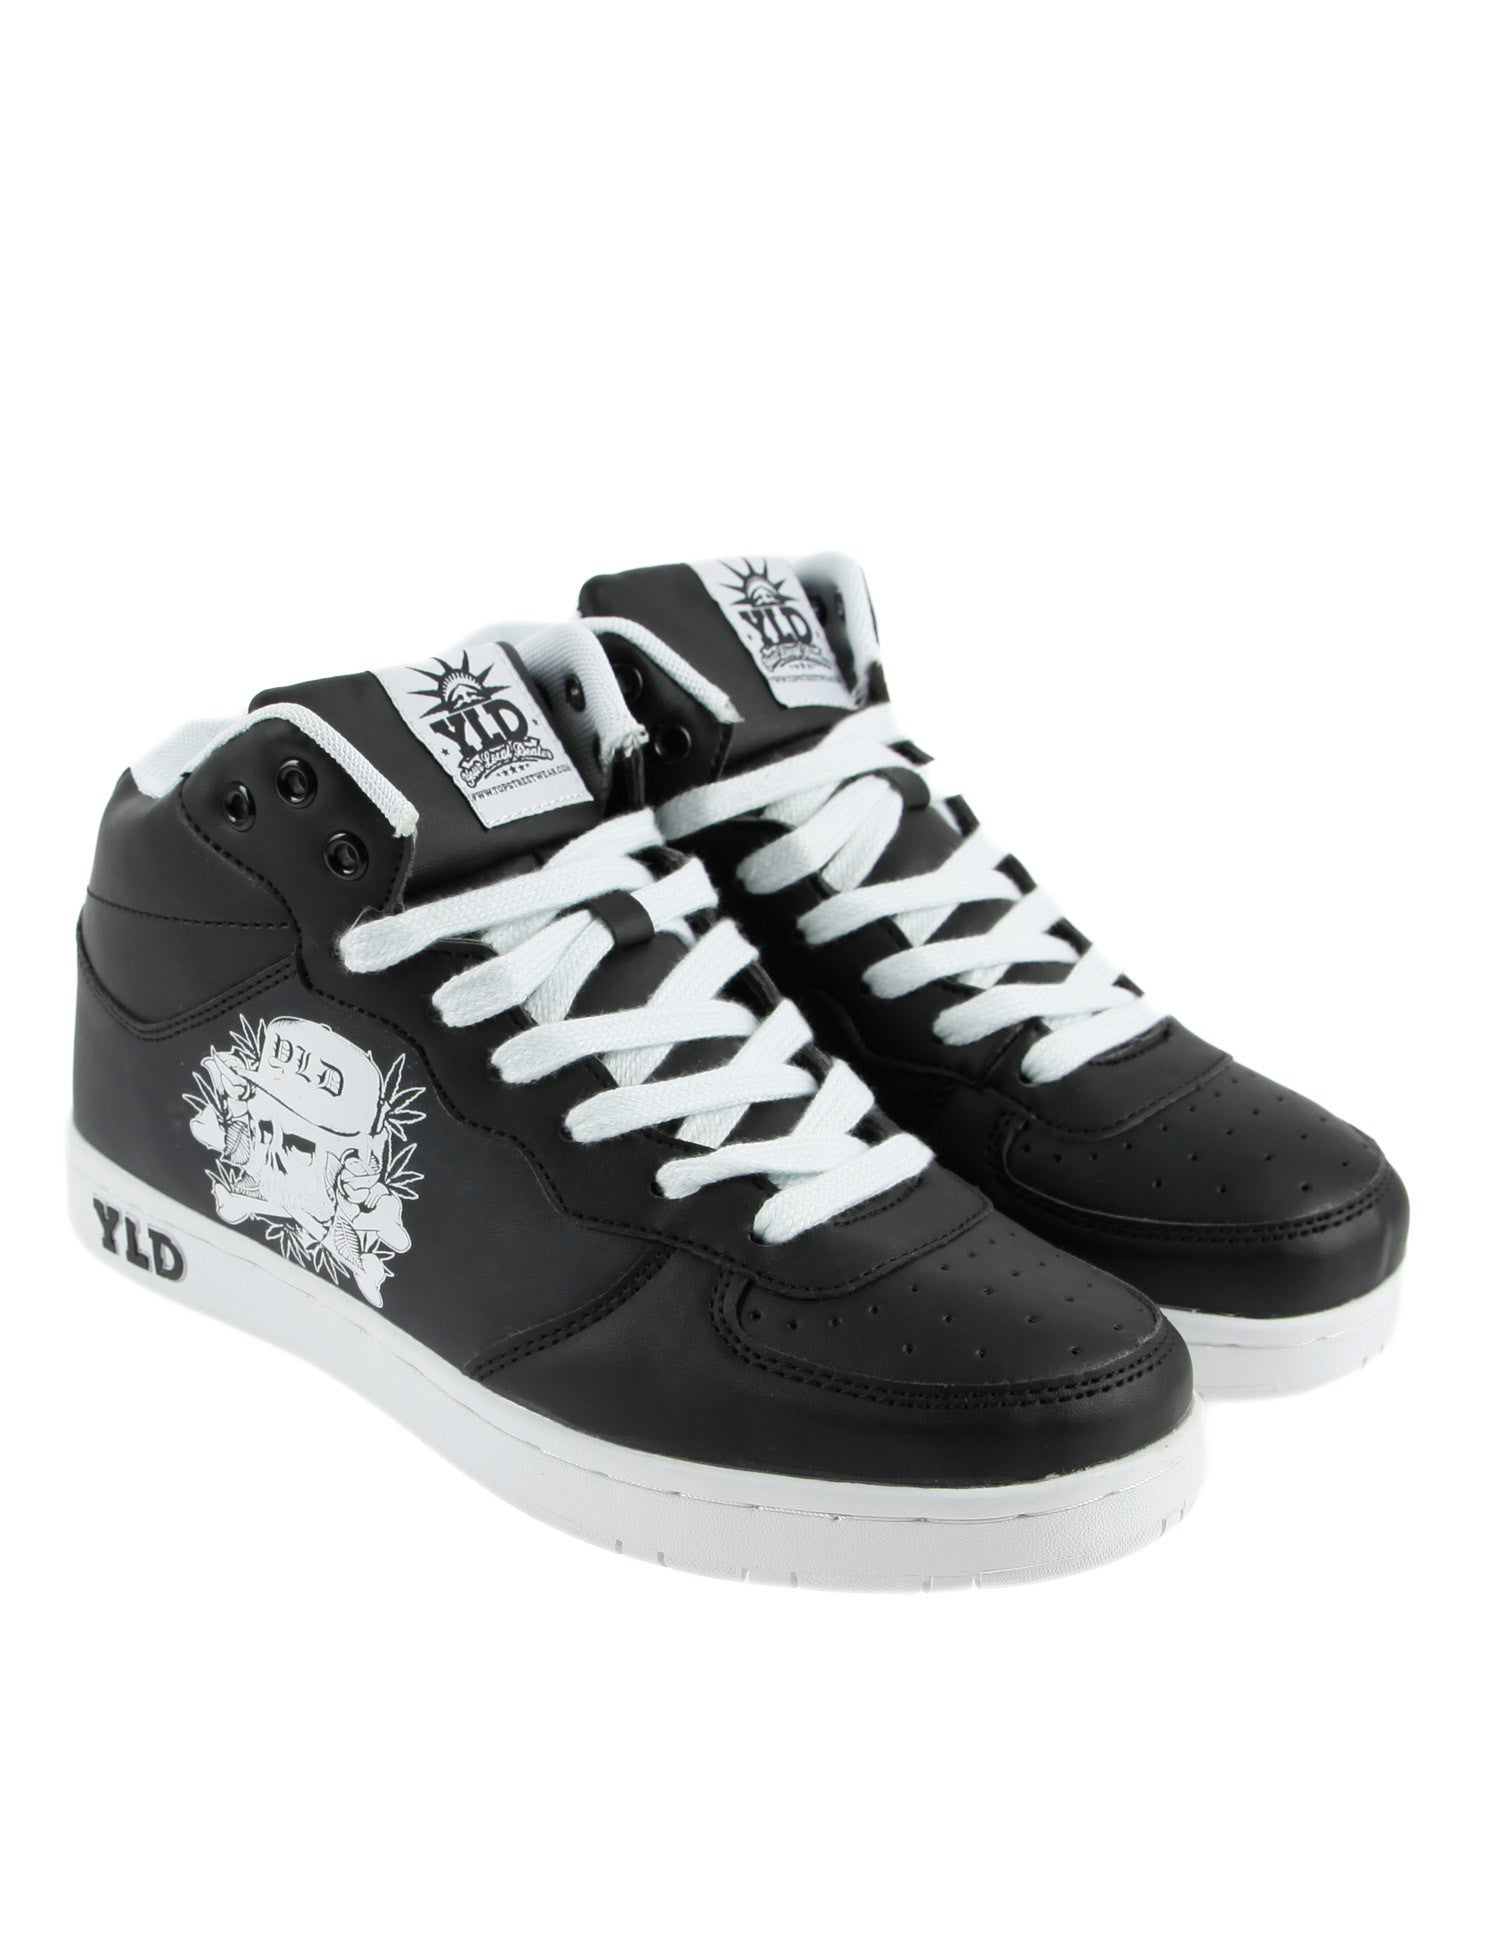 YLD Shoes G506C Black